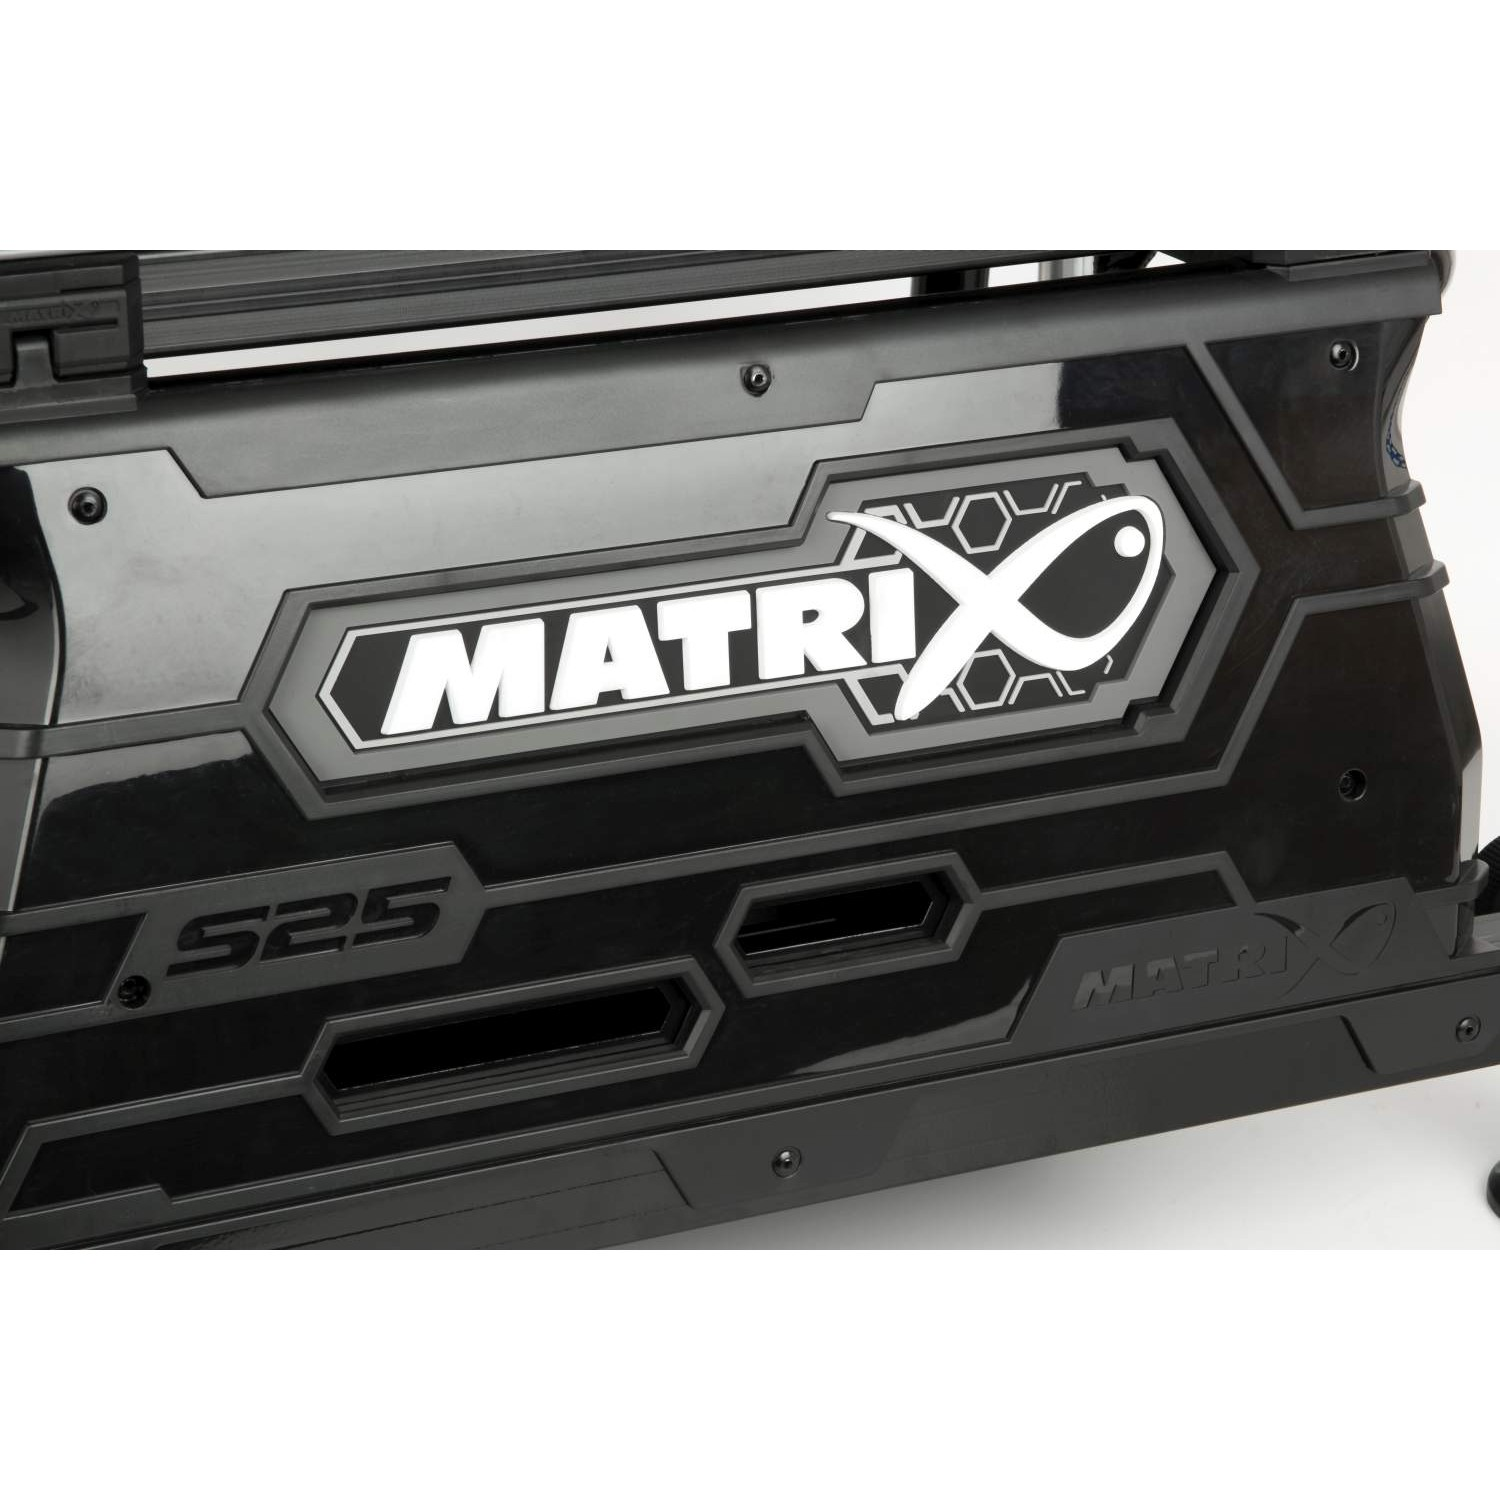 Fox Matrix S25 Superbox Black Edition